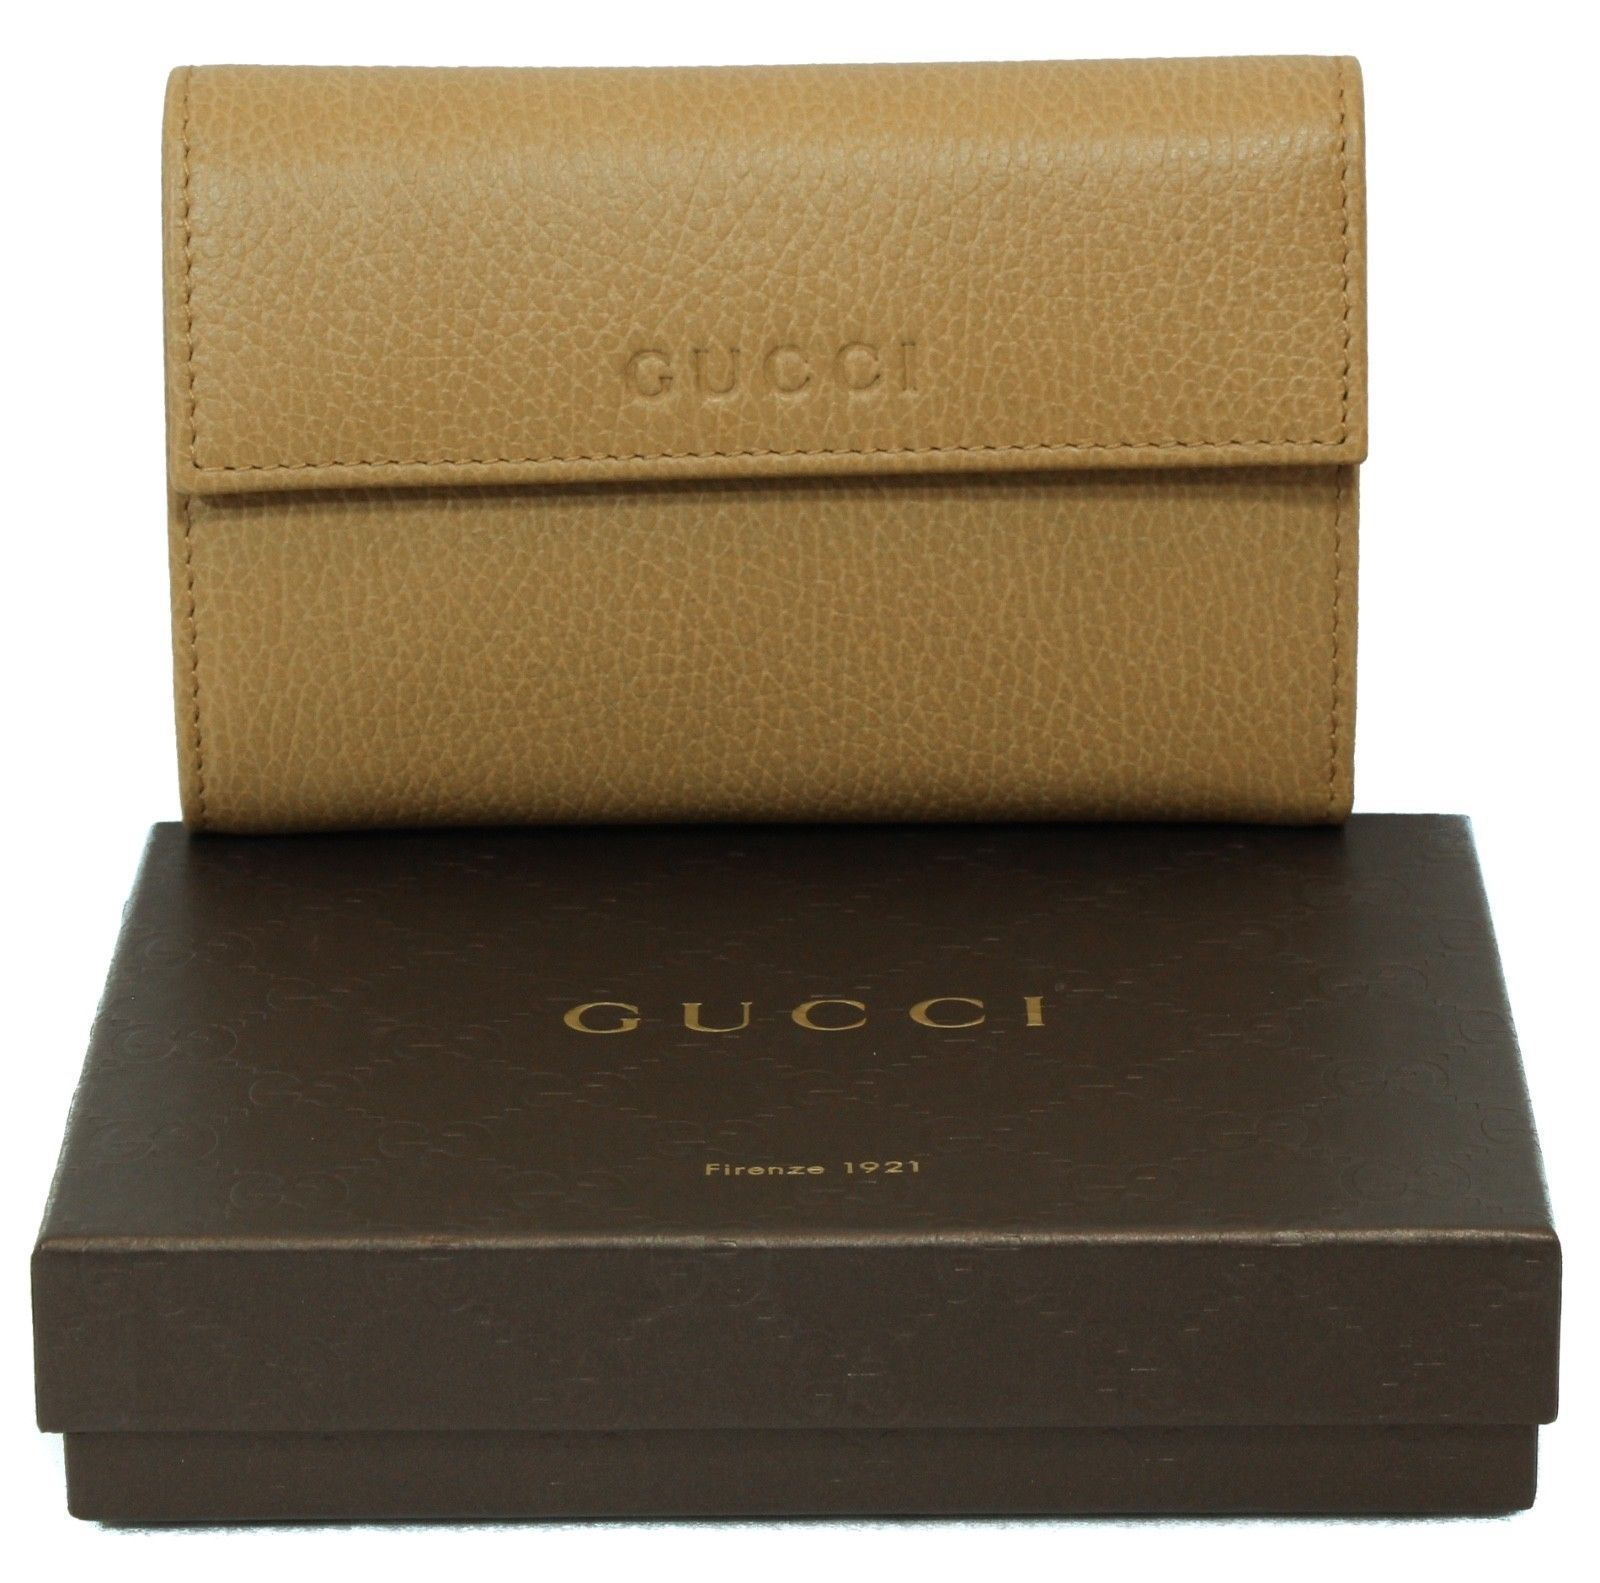 655c2472aa7 GUCCI 346057 Leather French Wallet